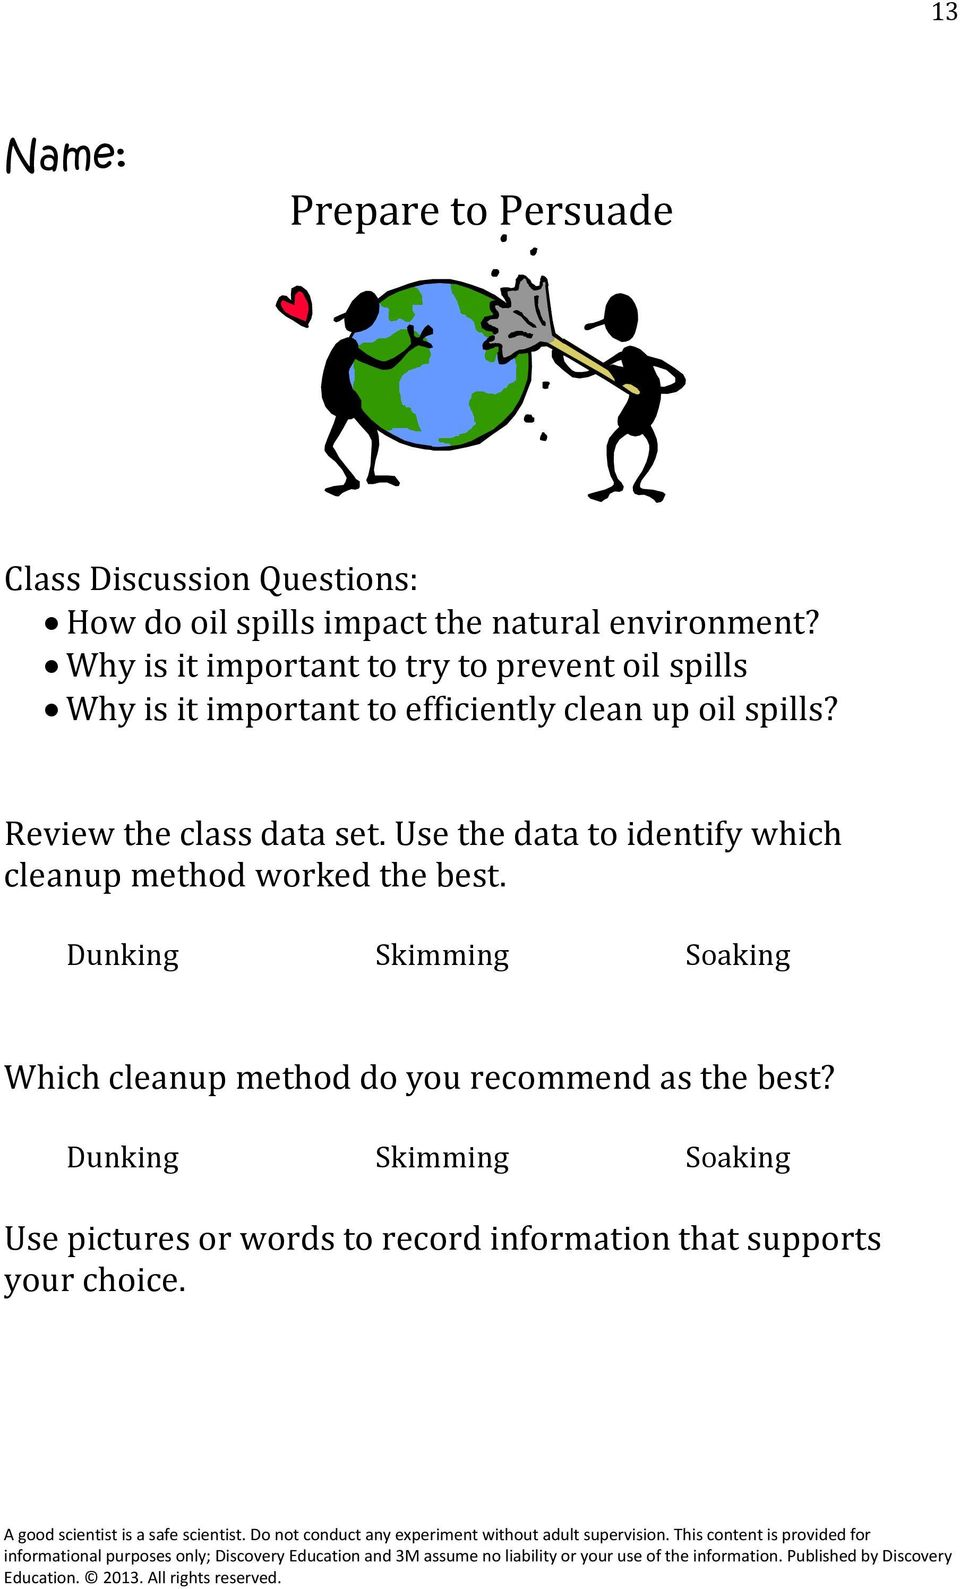 Review the class data set. Use the data to identify which cleanup method worked the best.